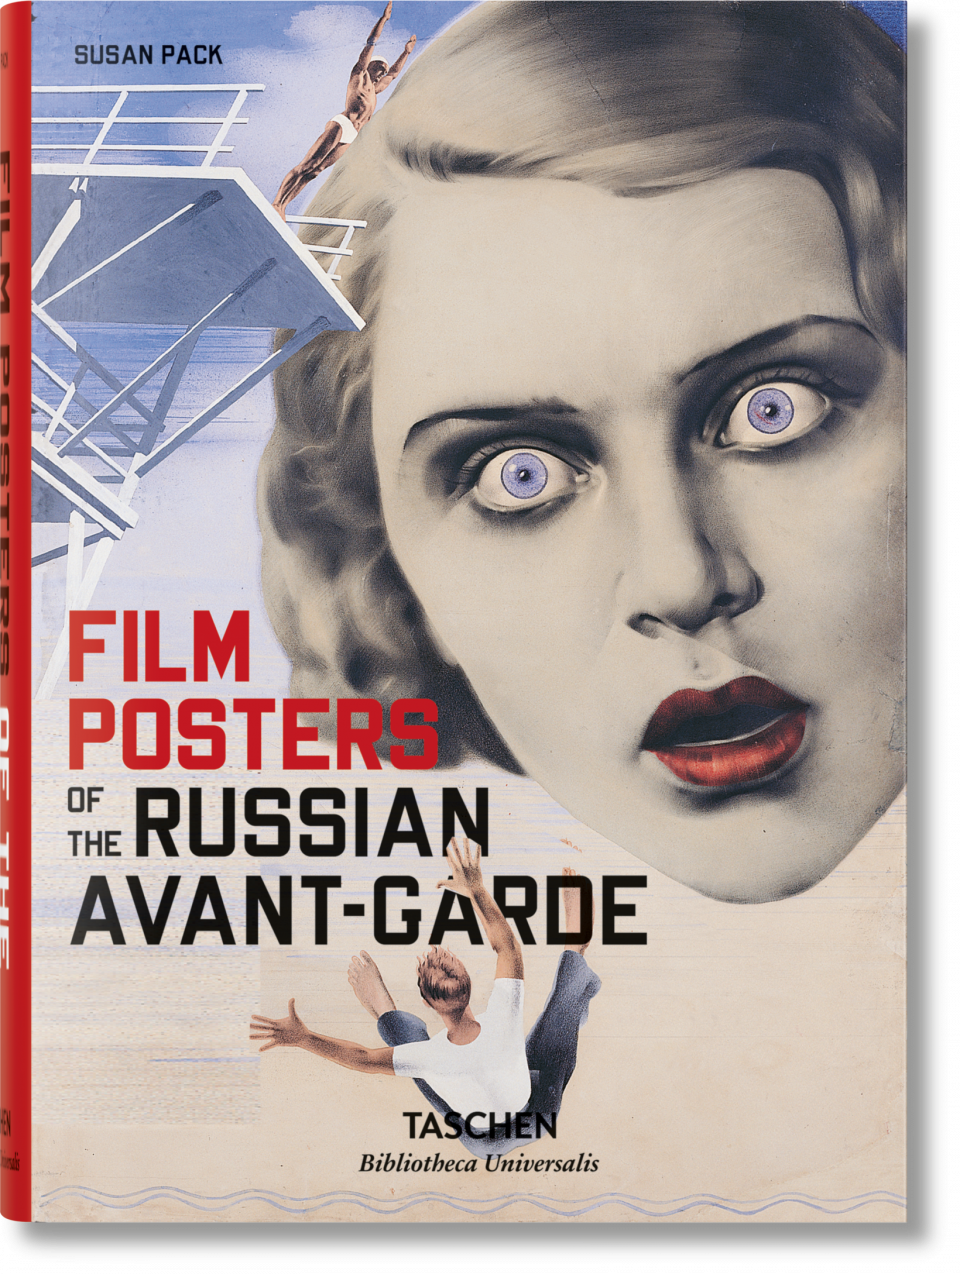 Film Posters of the Russian Avant-Garde - Pack Susan